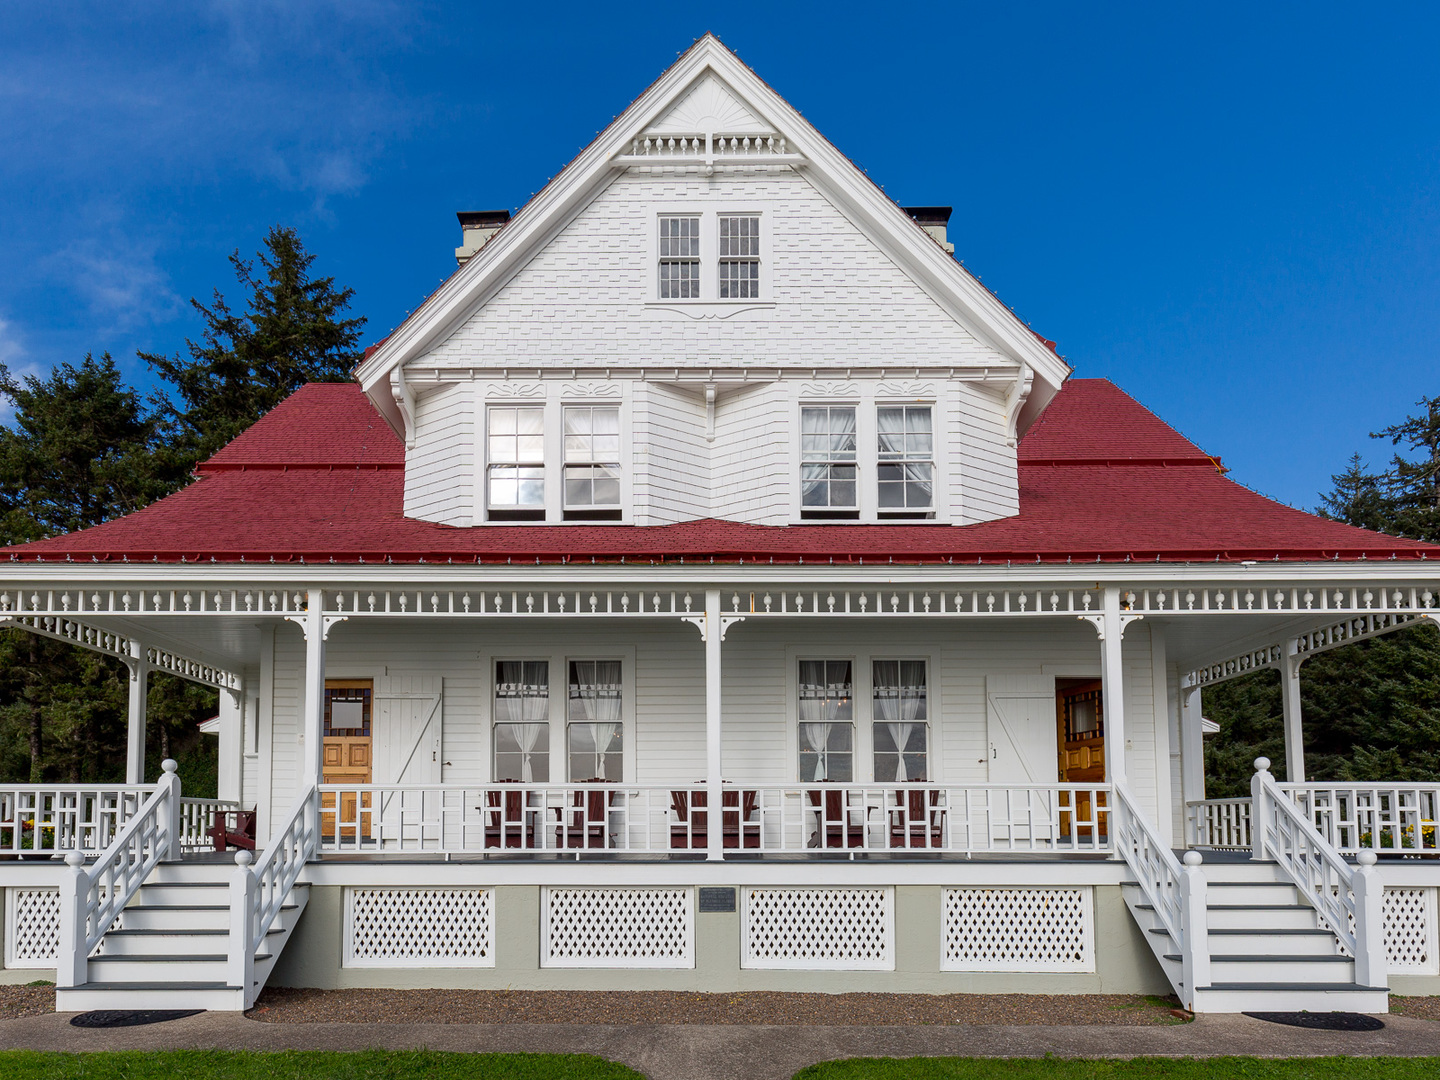 A large white building with pillars in front of a house at Heceta Lighthouse B&B.